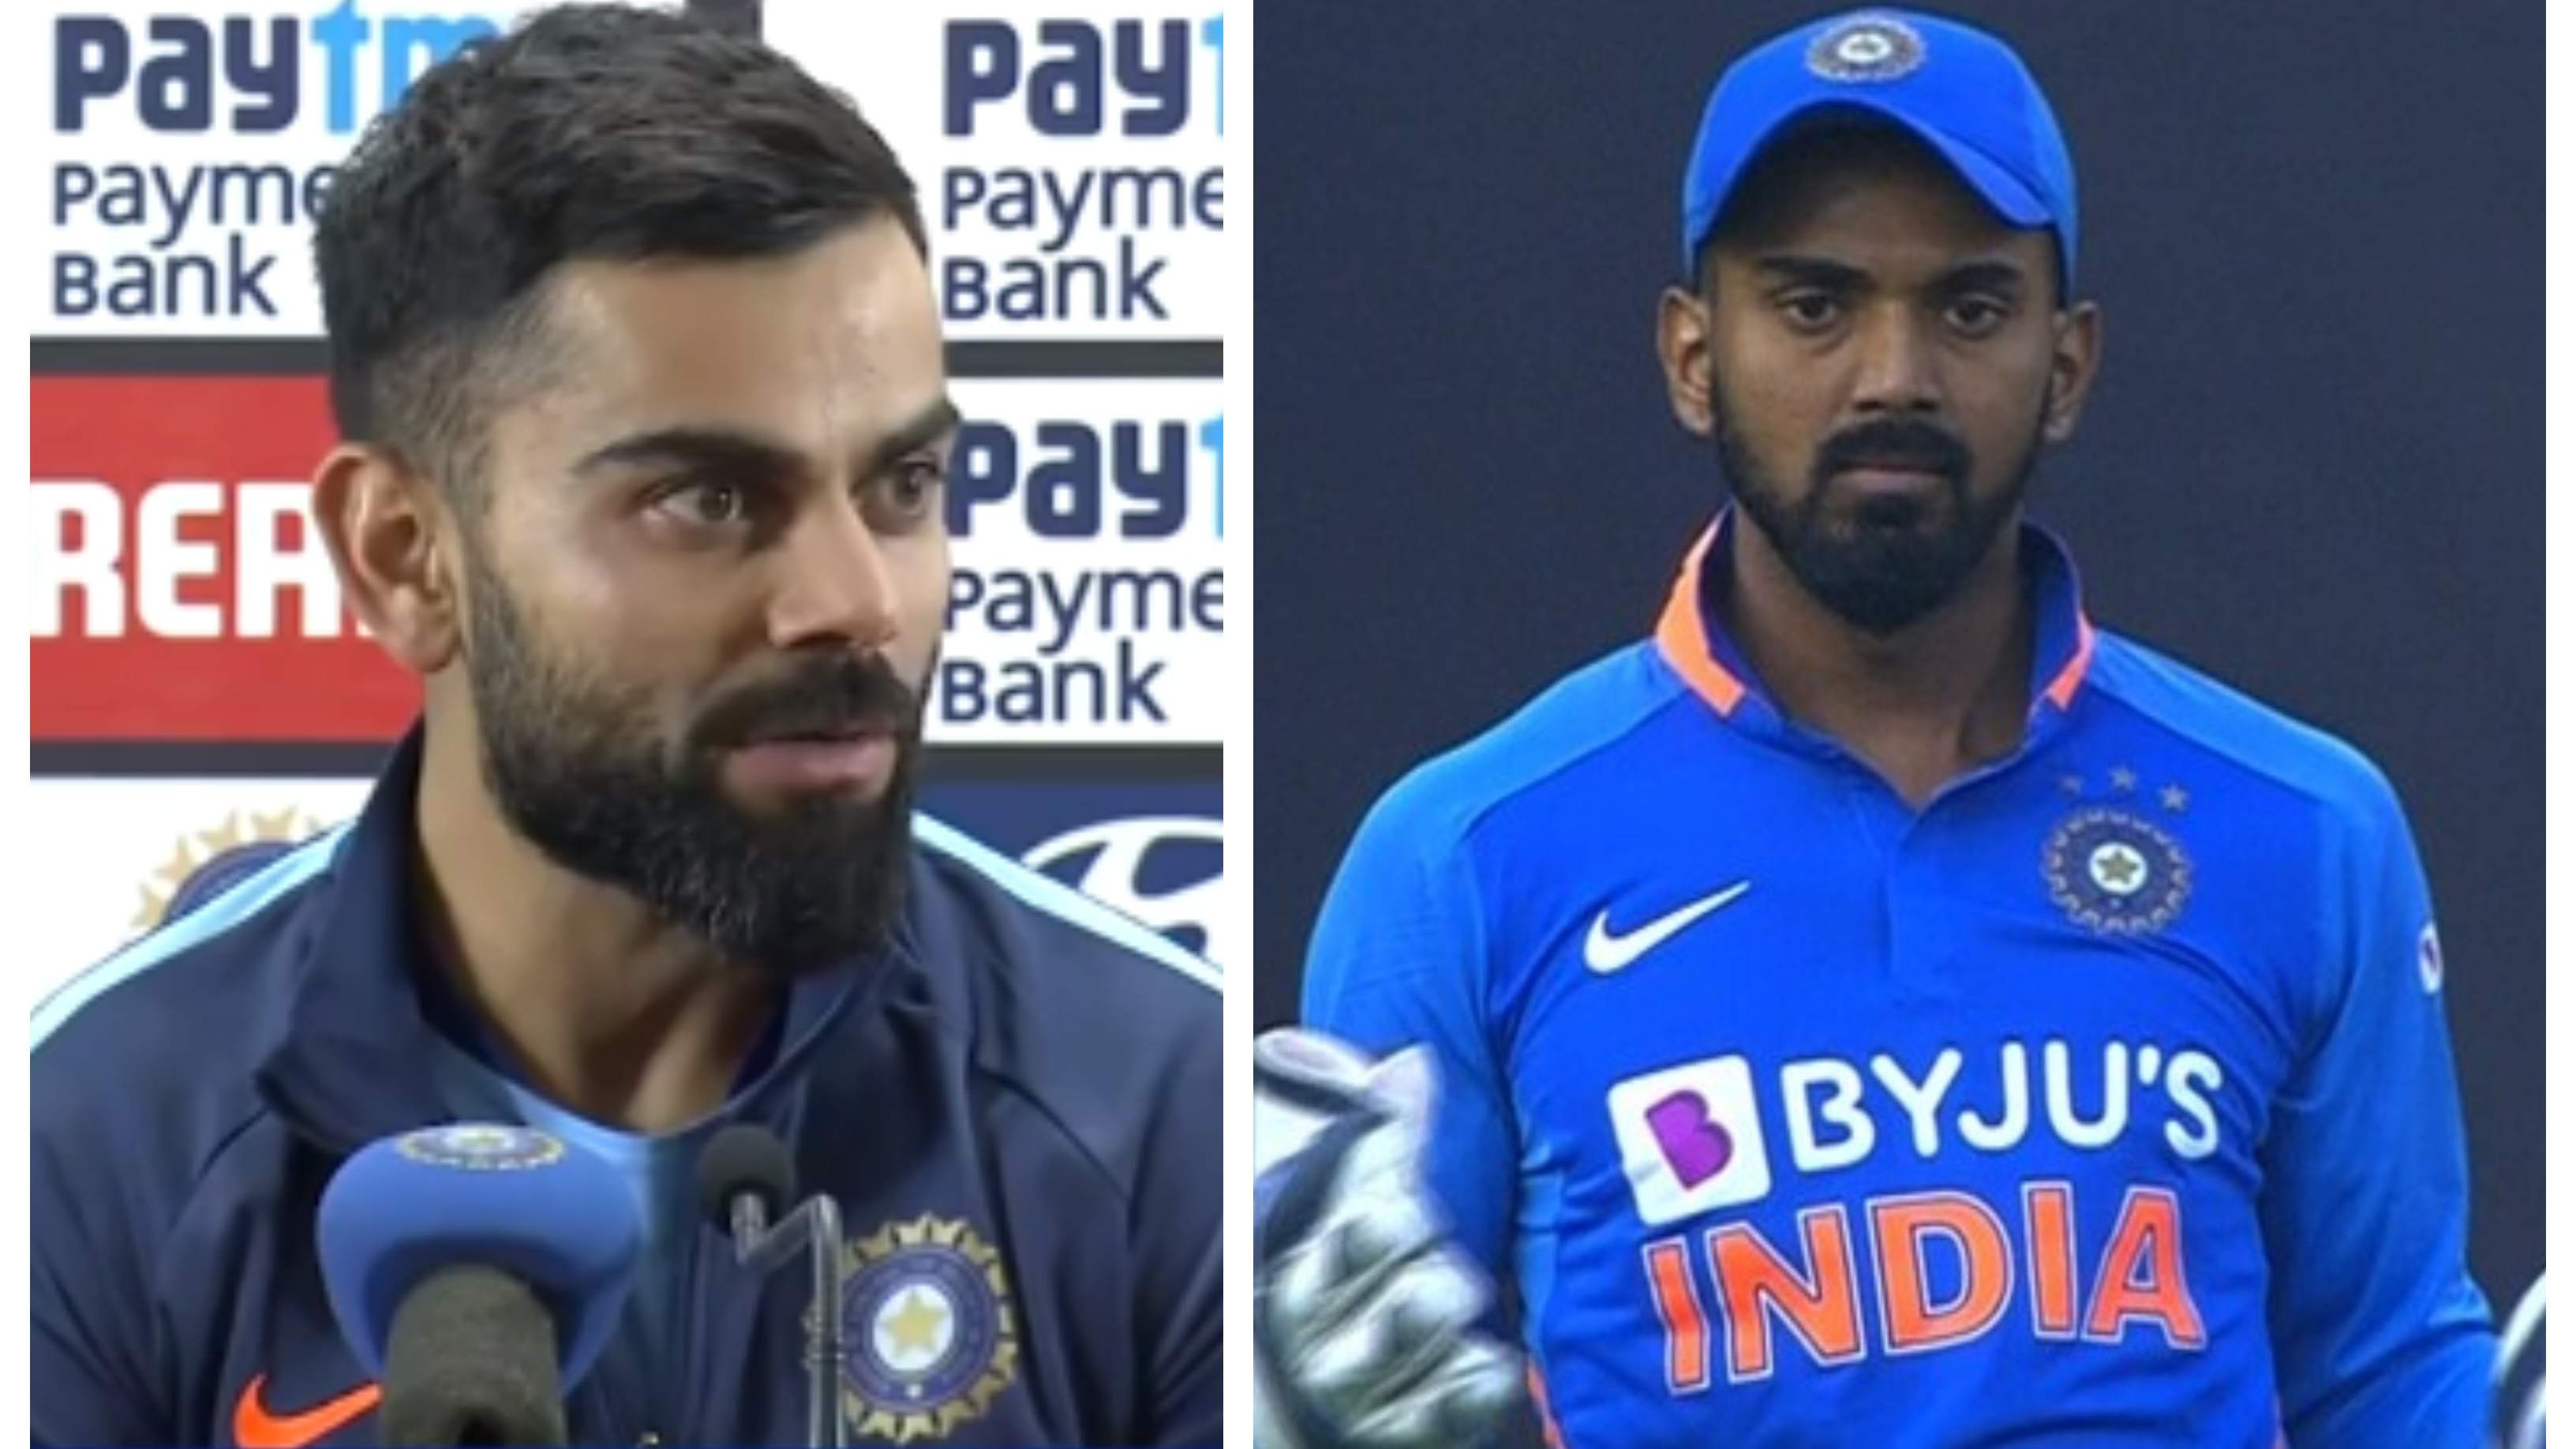 IND v AUS 2020: KL Rahul will continue to keep wickets for a while, confirms Virat Kohli